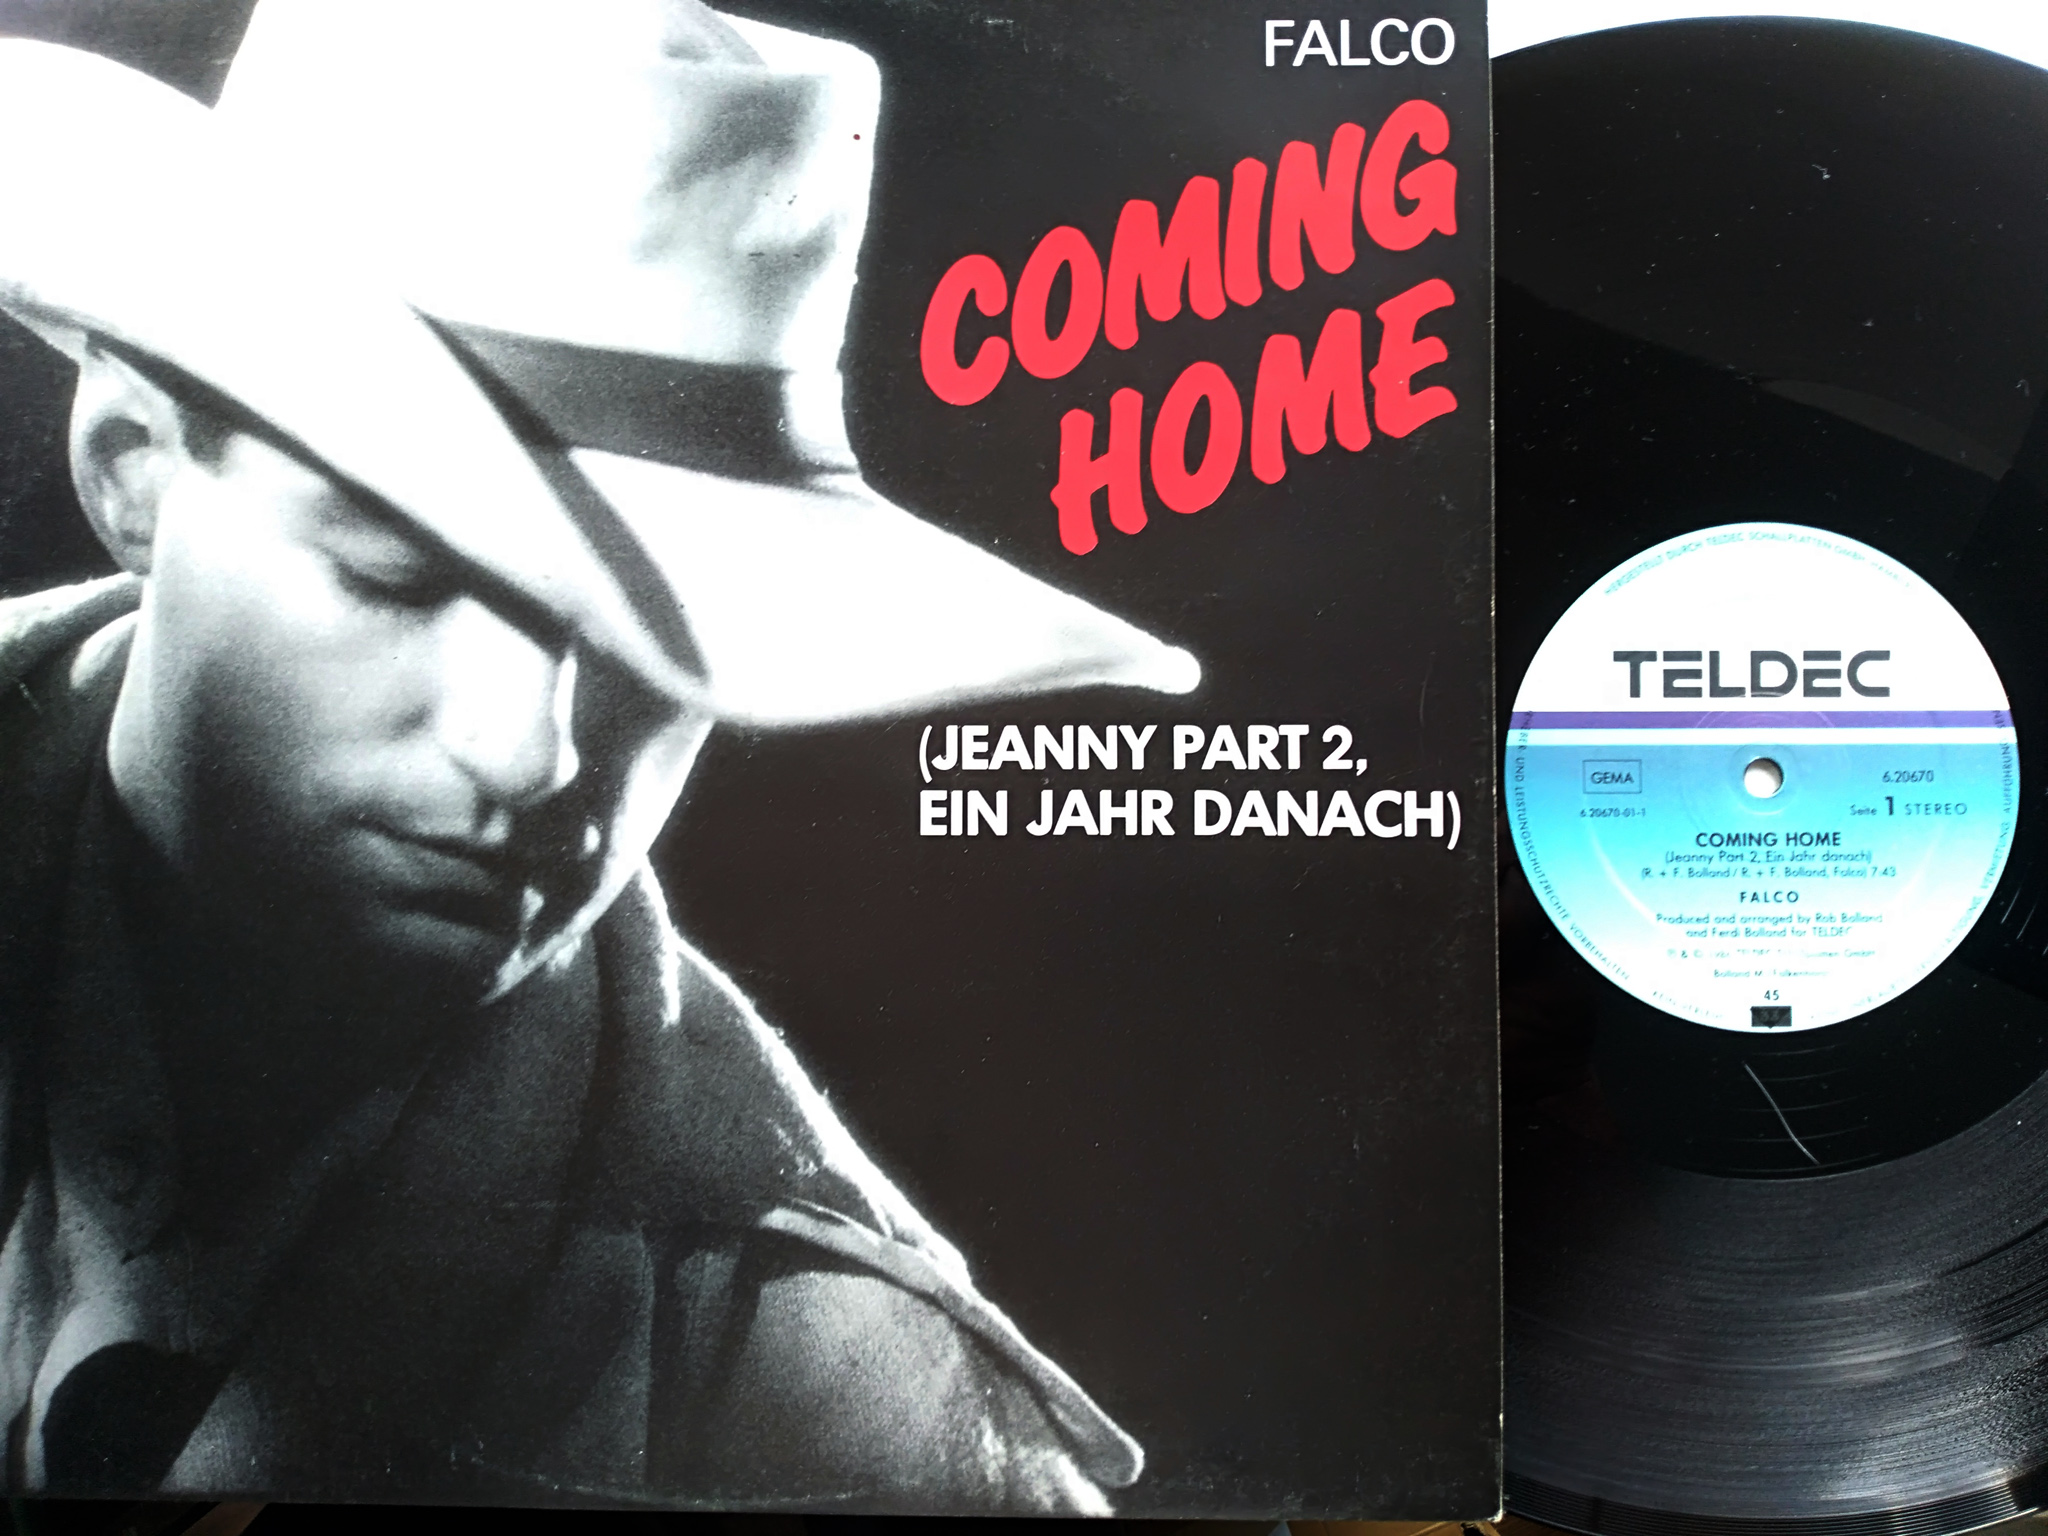 Falco - Coming Home (Jeanny Part 2)